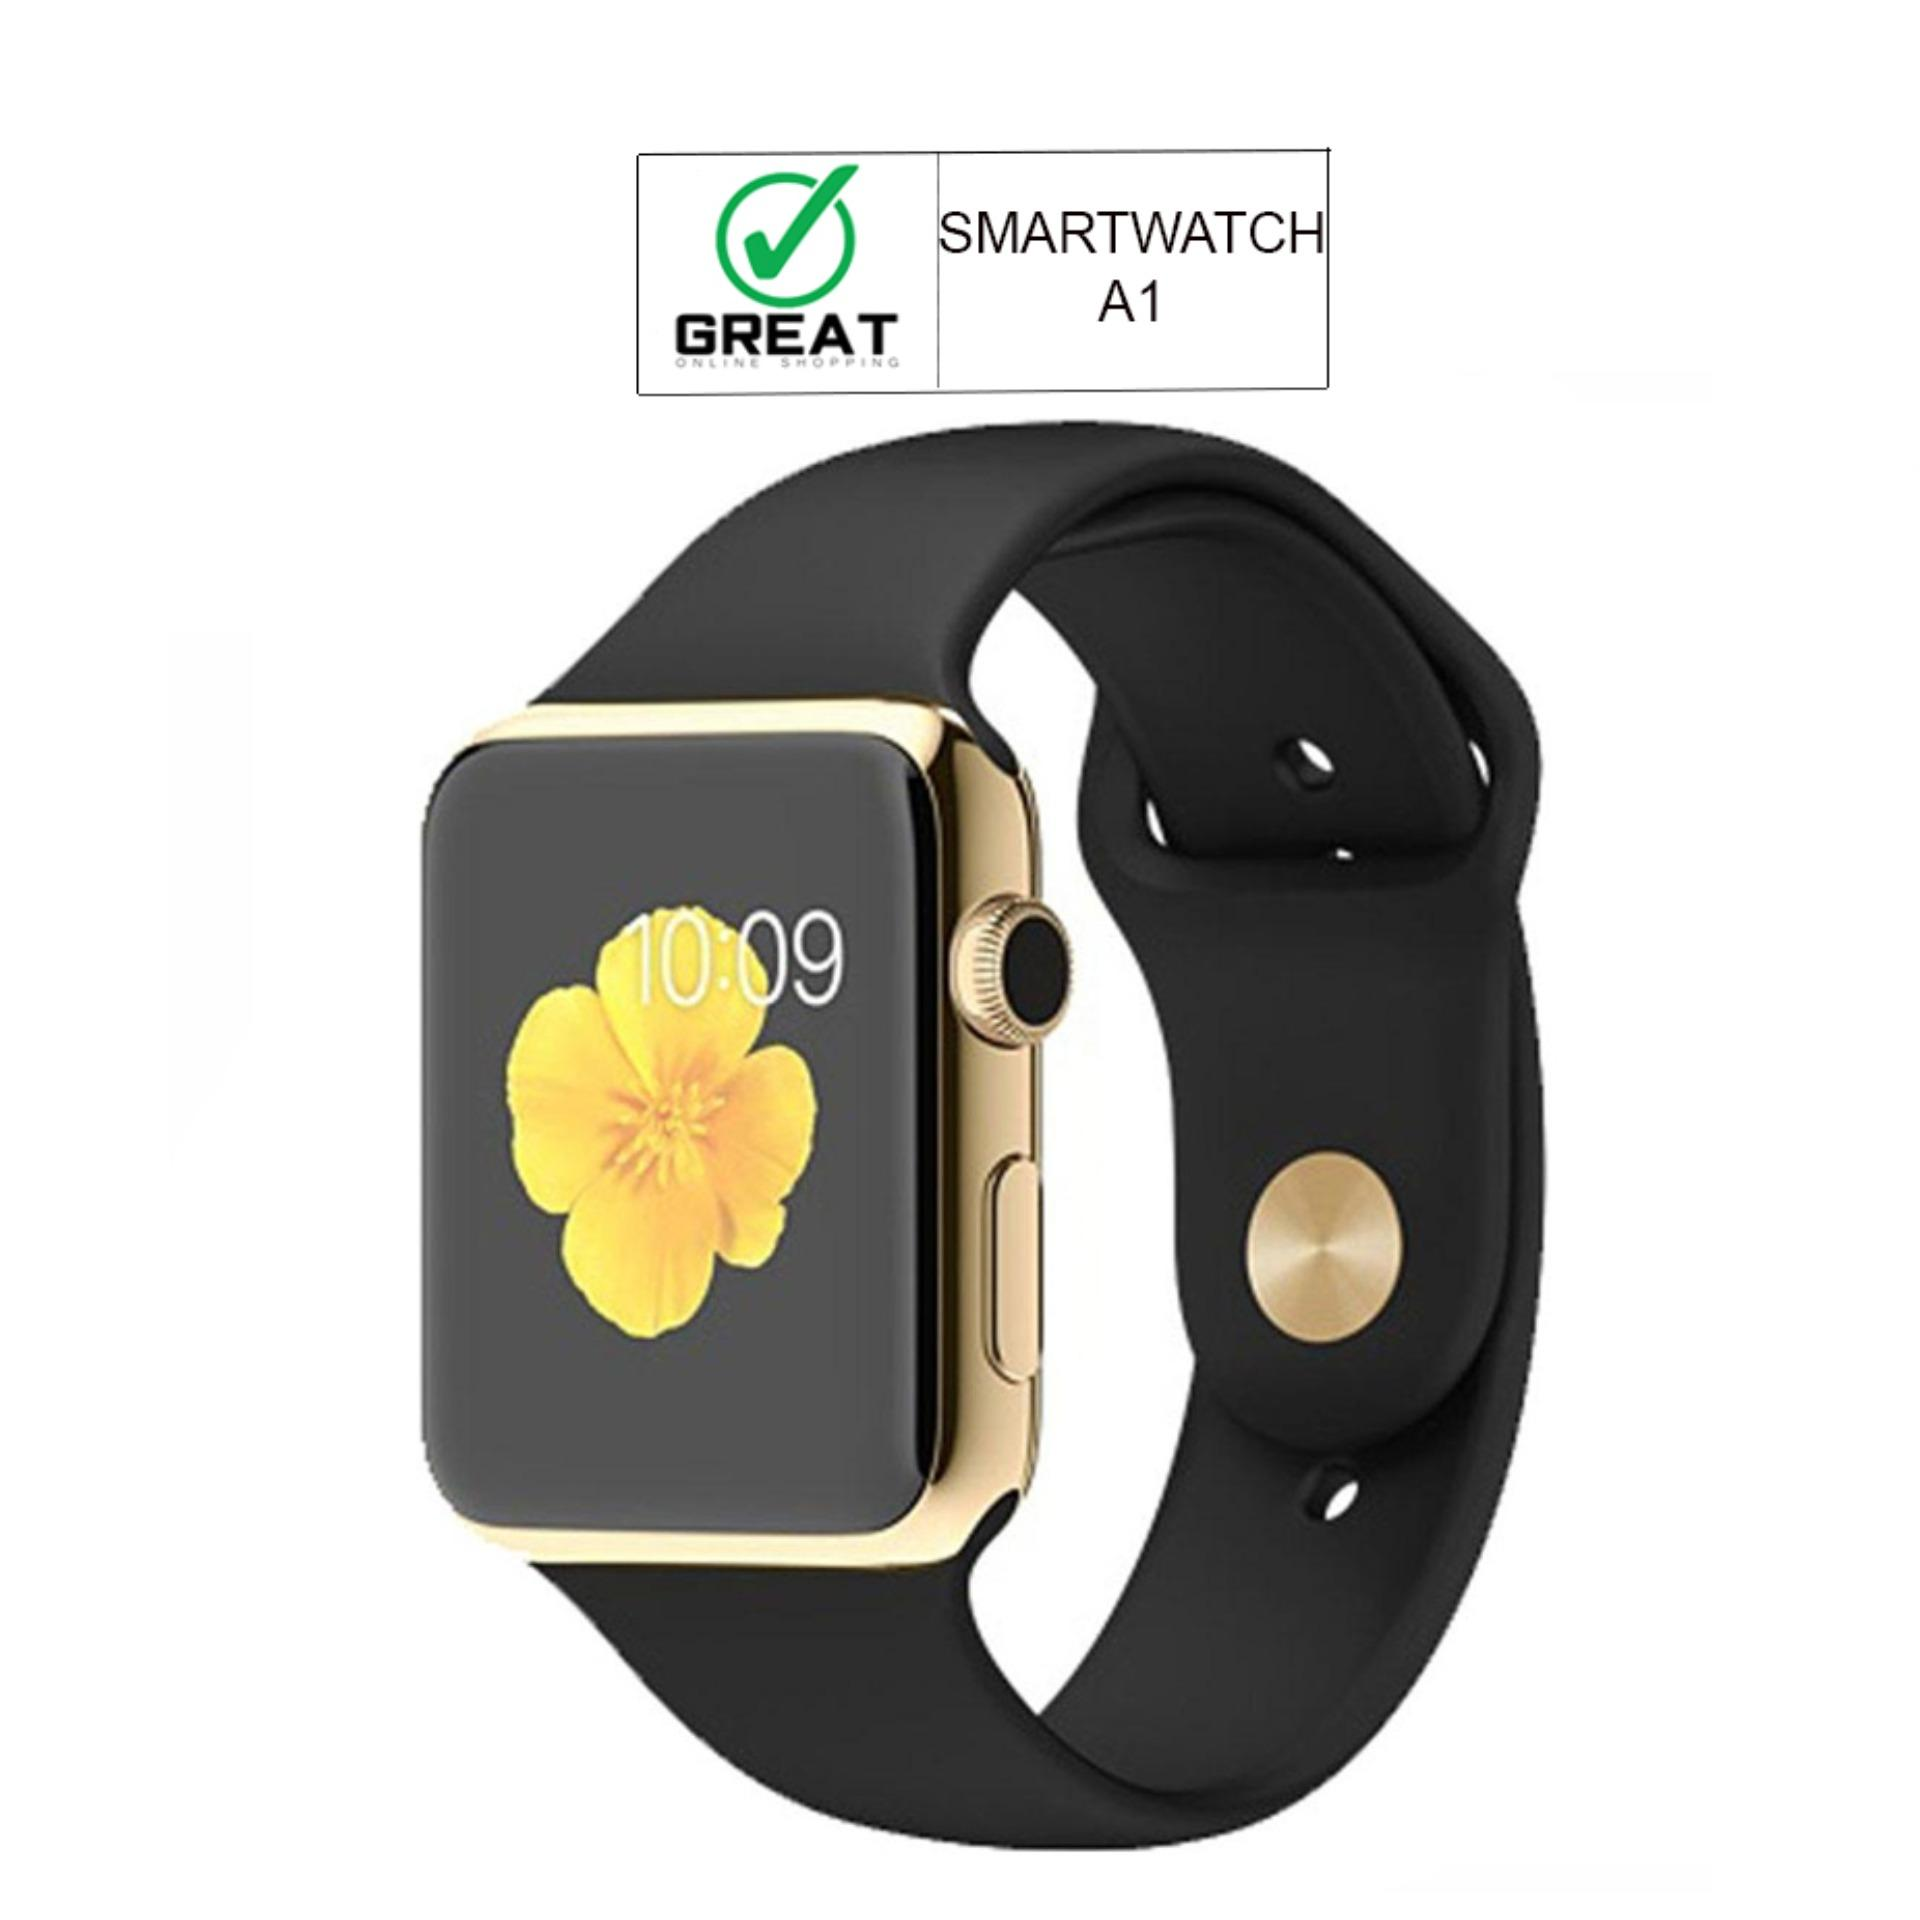 Buy One Get Nut Mini Smart Tracker Bluetooth Gps By Lenovo For Lennovo Pencari Pendeteksi Barang Hilang Smartwatch A1 Watch With Camera Pedometer Sleep Mp3 Answer Call Android Ios